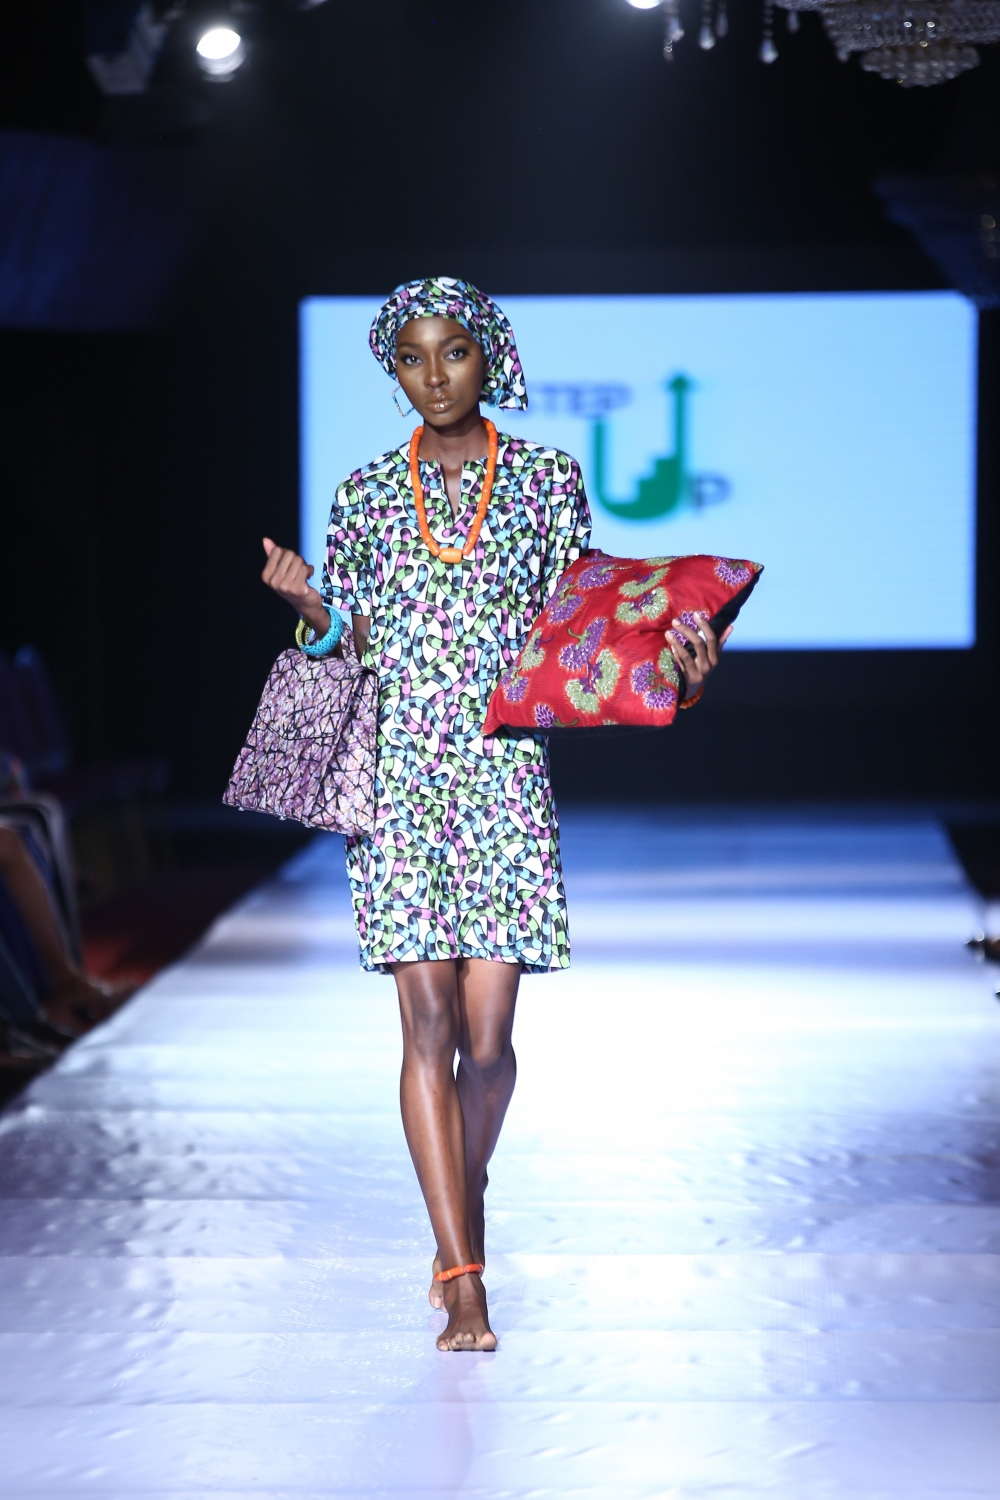 Designer Mmakamba showcased her recent collection for Day 1 of Africa Fashion Week Nigeria 2017. From the fringe to the low neckline pieces, Mmakamba definitely has a lot to offer the contemporary woman. Check it out!